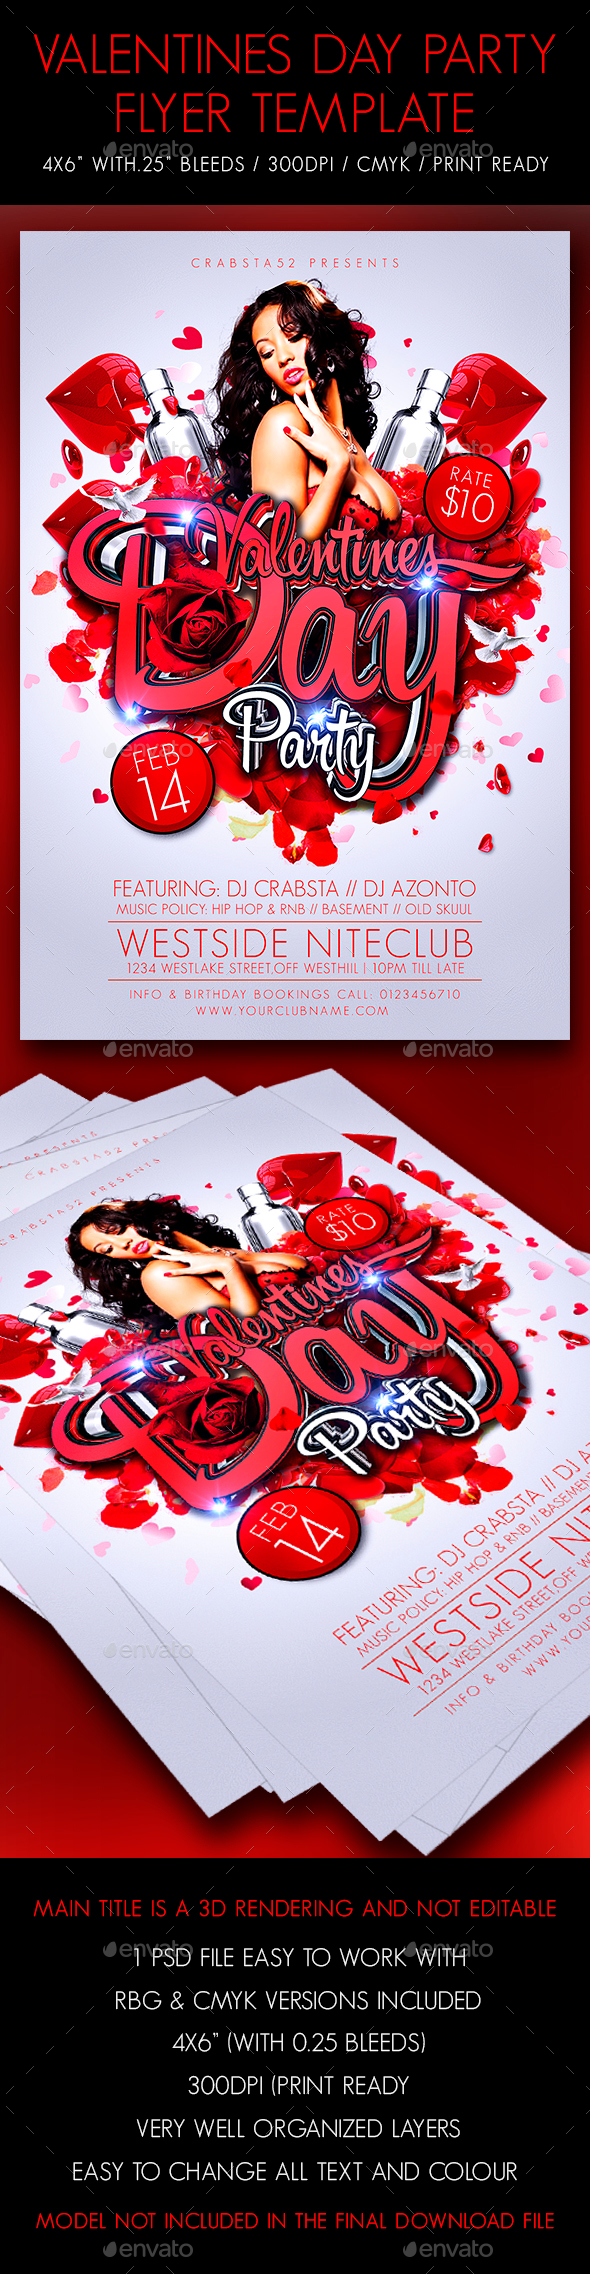 Valentines Day Party Flyer Template - Flyers Print Templates